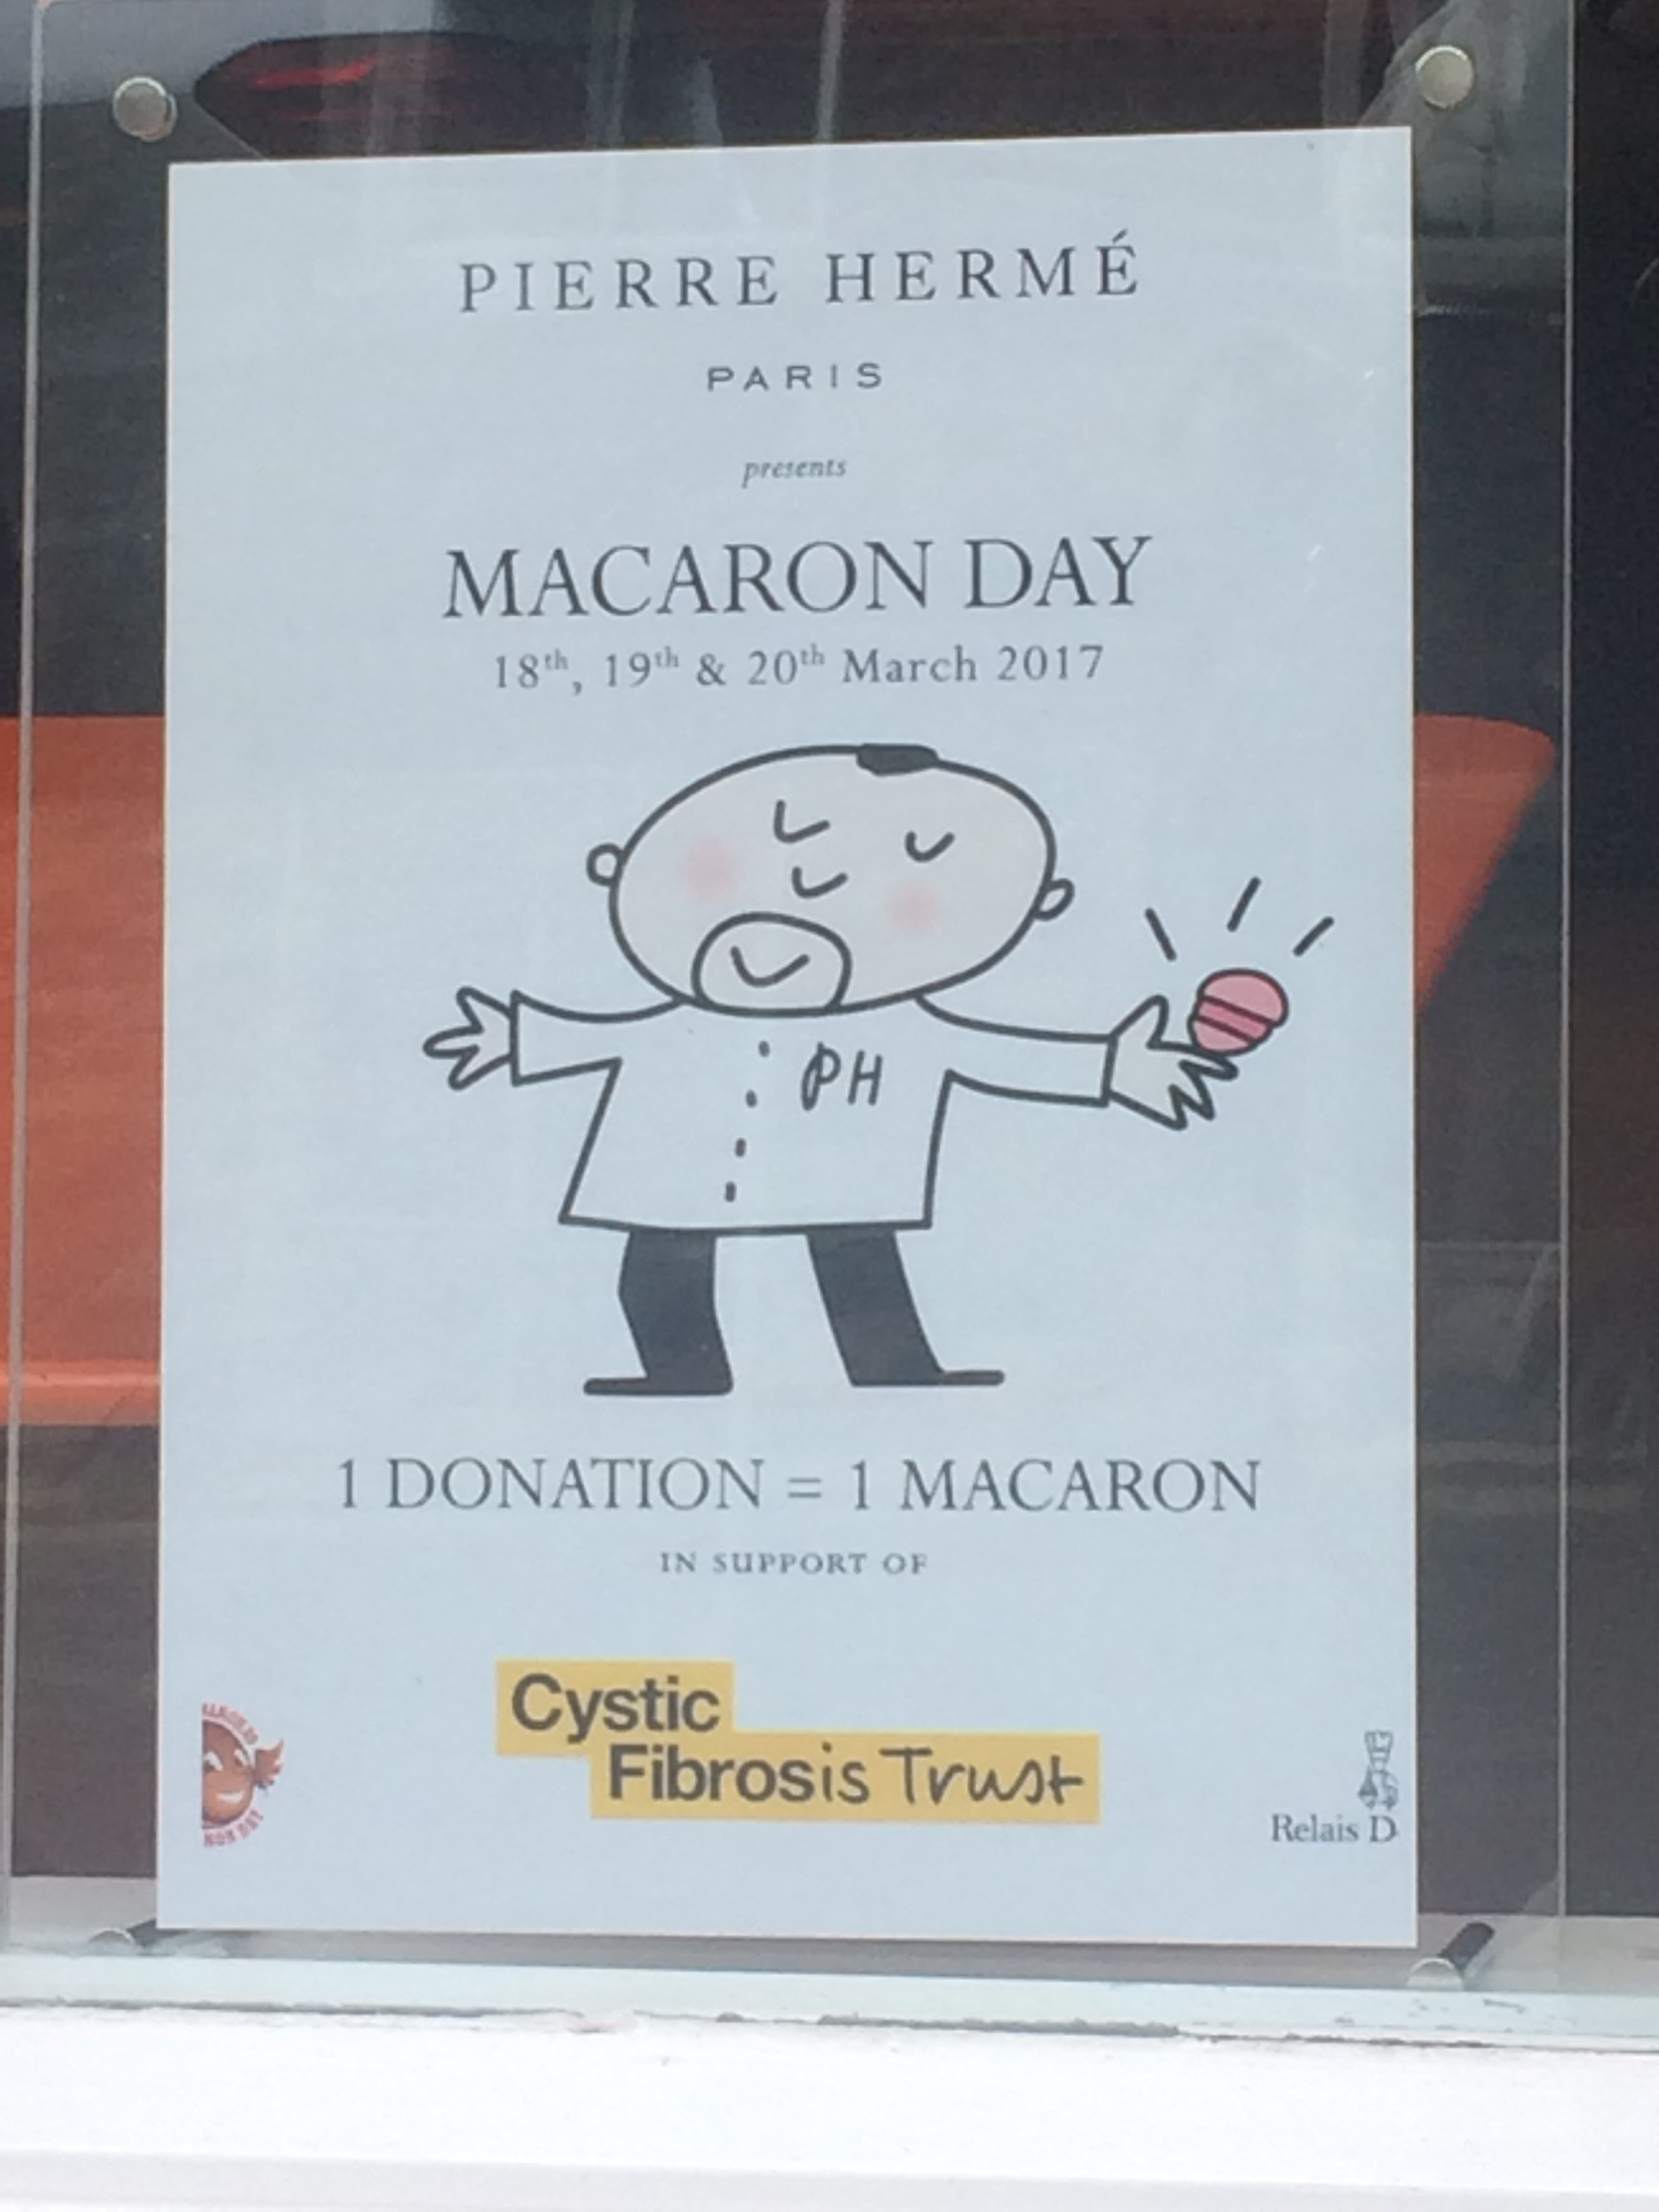 Where to find the best macarons in london french affliction for Macarons la maison du chocolat